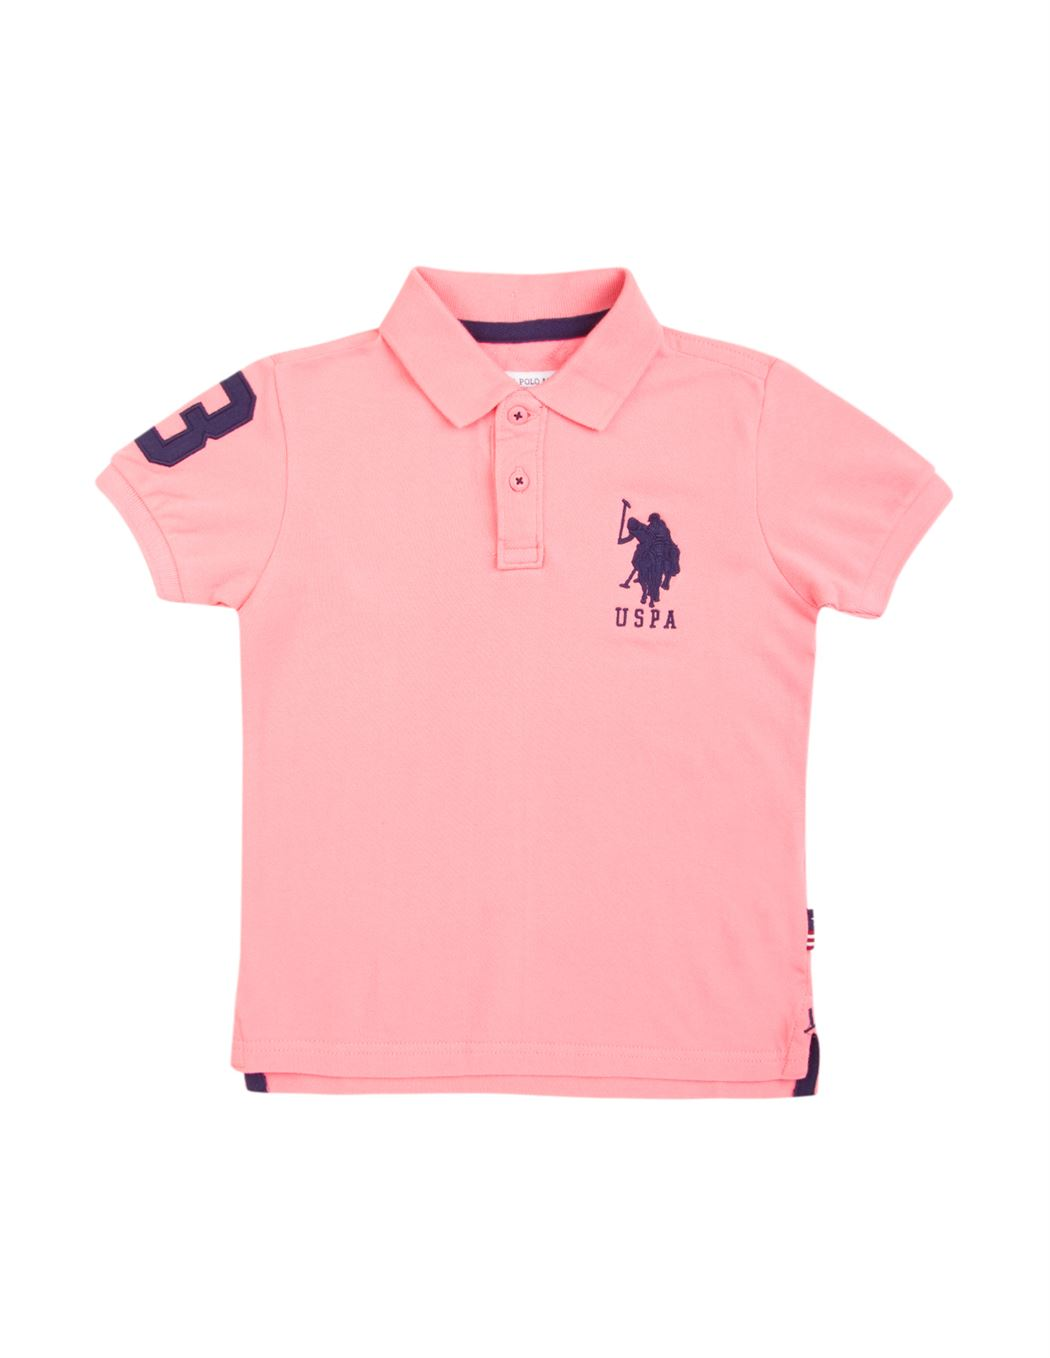 U.S. Polo Assn. Casual Wear Solid Boys T-Shirt